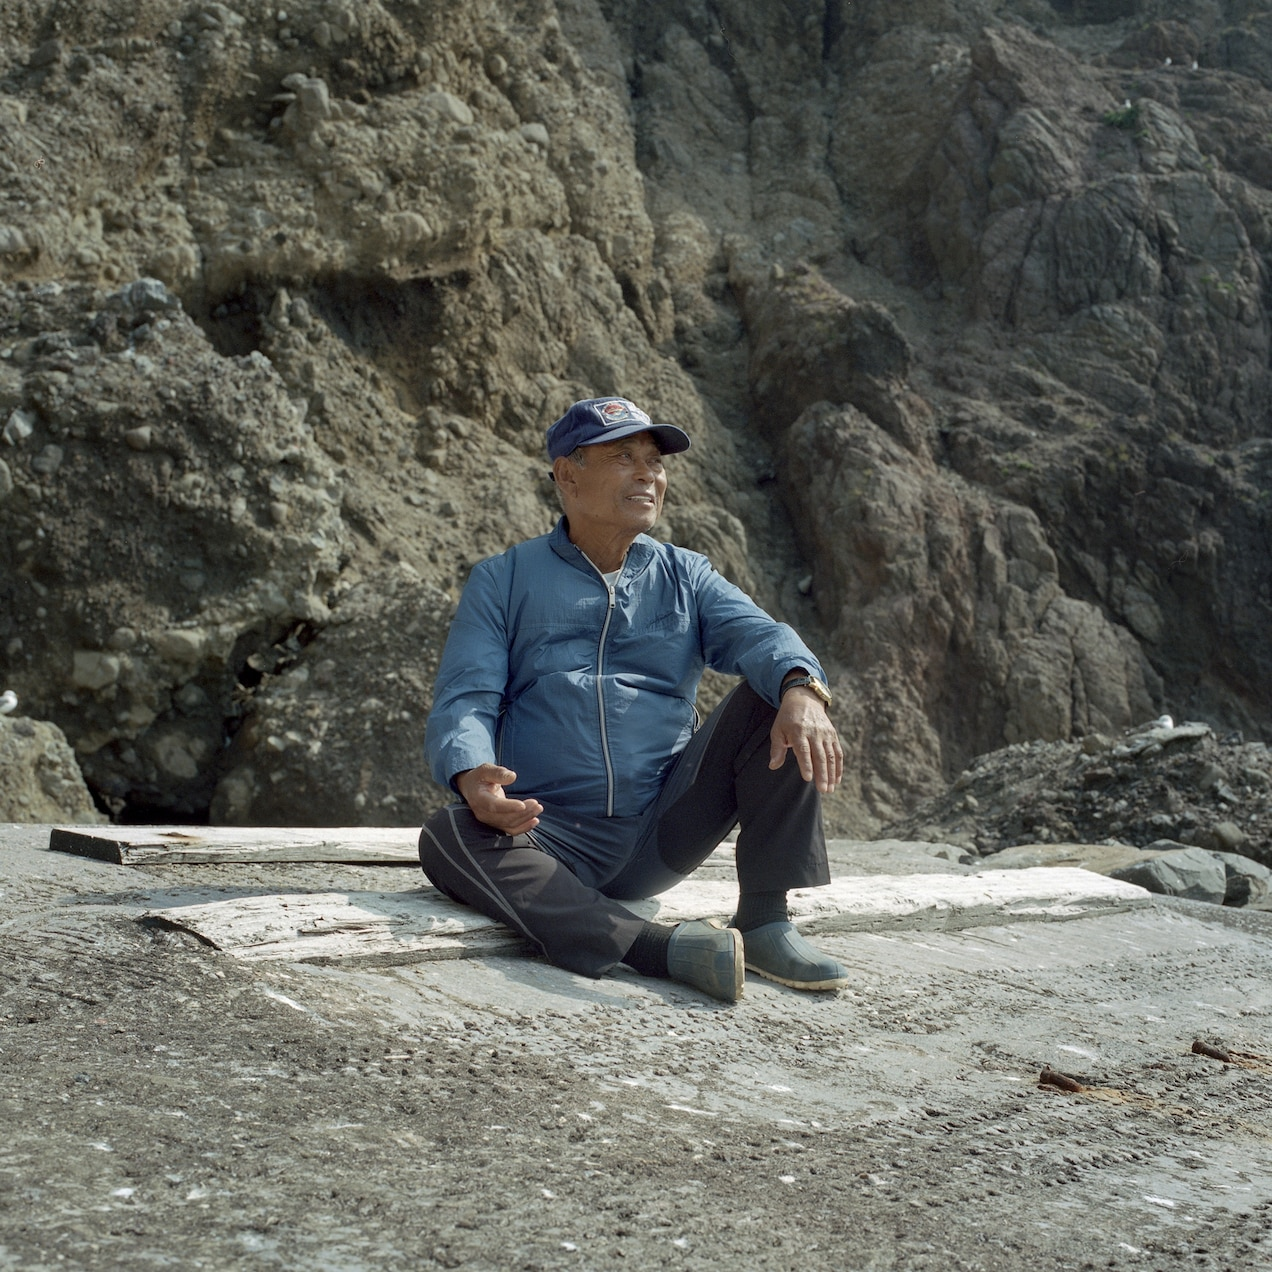 Kim Sung-do is the only offical resident. At 79 years old, he struggles to continue to fish. He came to the Dokdo rocks to join his former fishing partner, who built the only house of the west island in 1965.